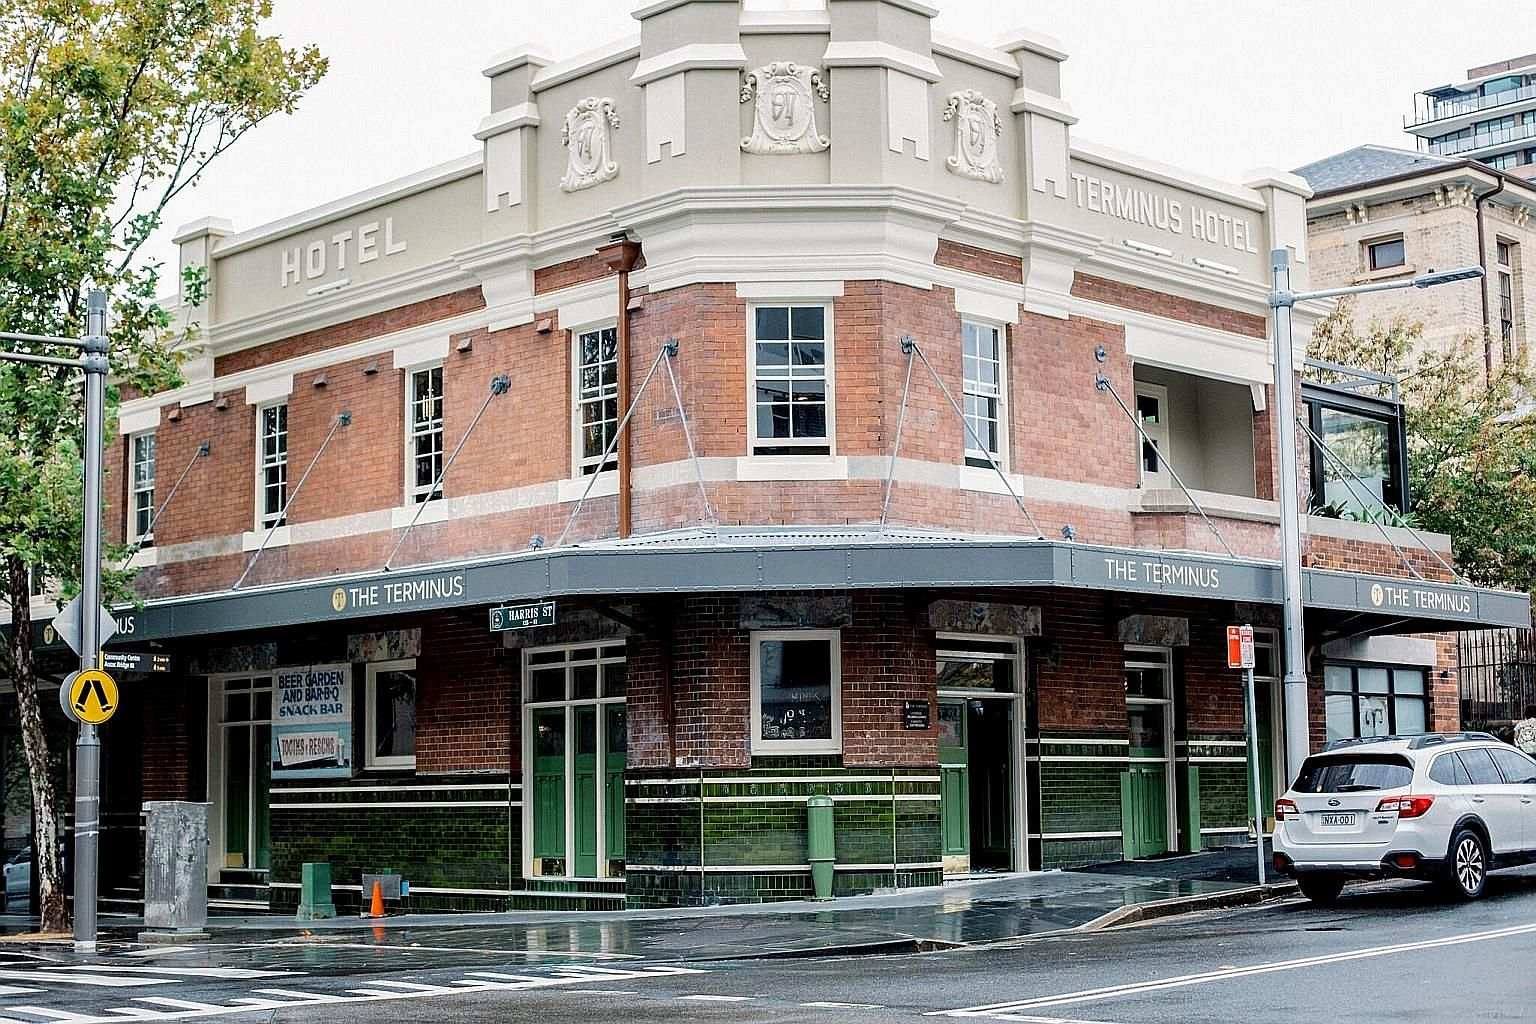 The Nelson Hotel in Sydney's Bondi Junction opened in 1938 and the pub has retained its old-world charm, including art deco furnishings and tiled interior. The Royal Hotel in Bondi, which was founded in 1907, was recently bought by a hospitality and